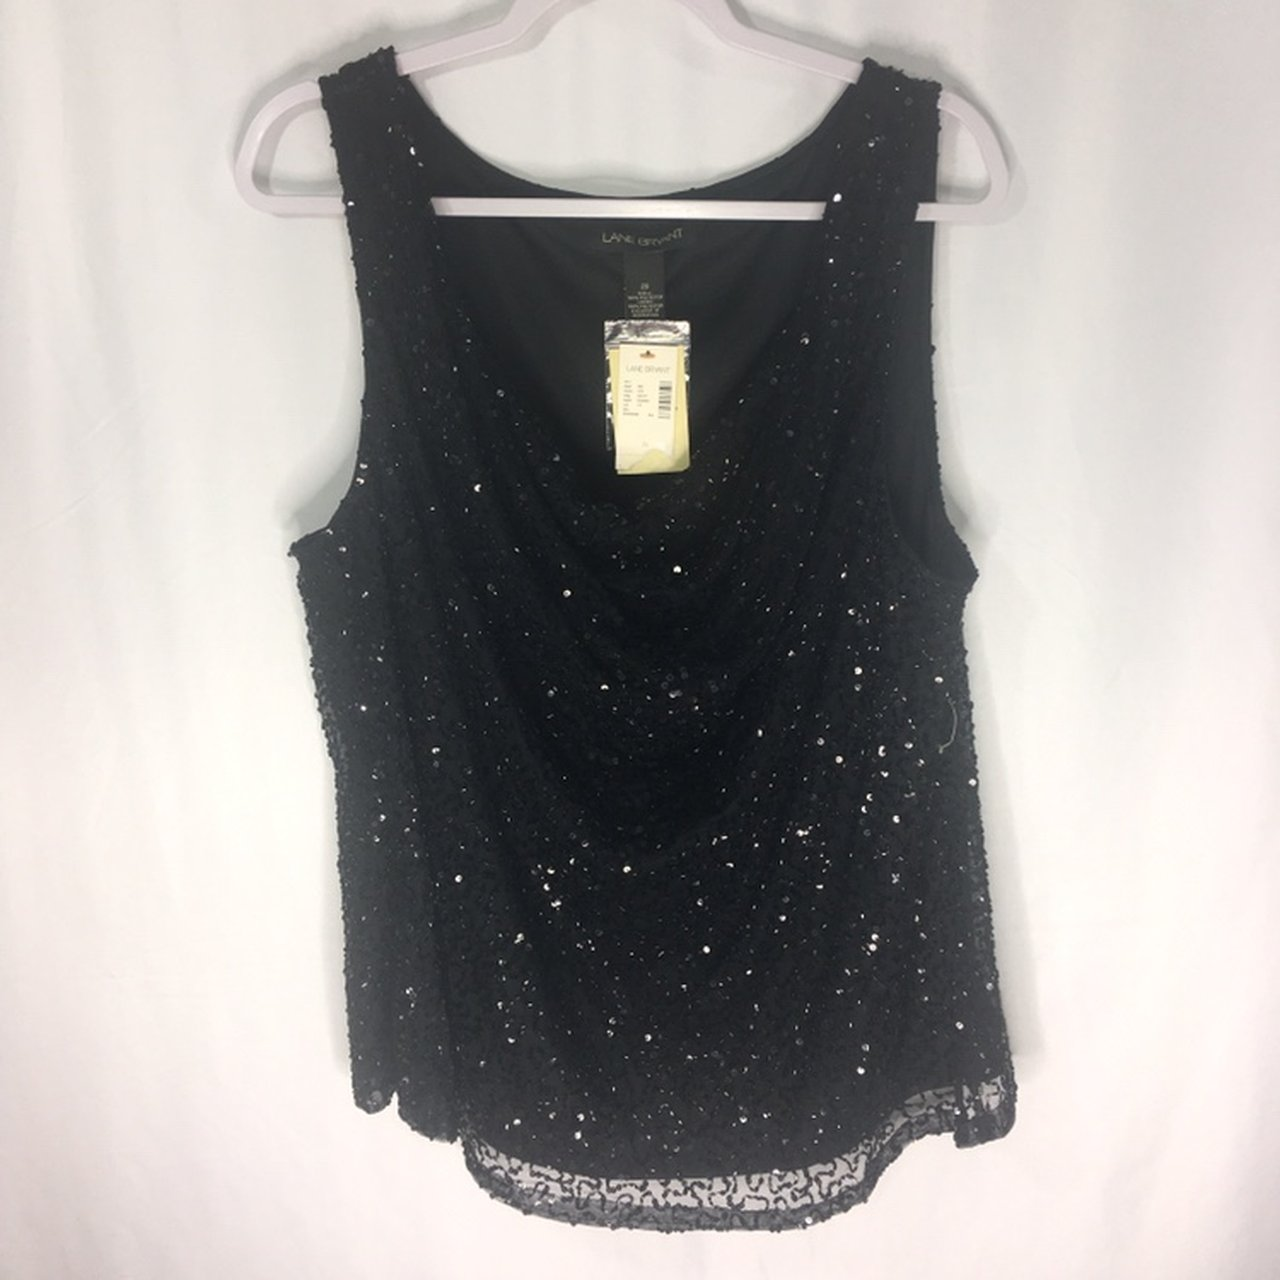 010410dc82c Lane Bryant Women s Top - Size 20 New with tags - sleeveless - Depop